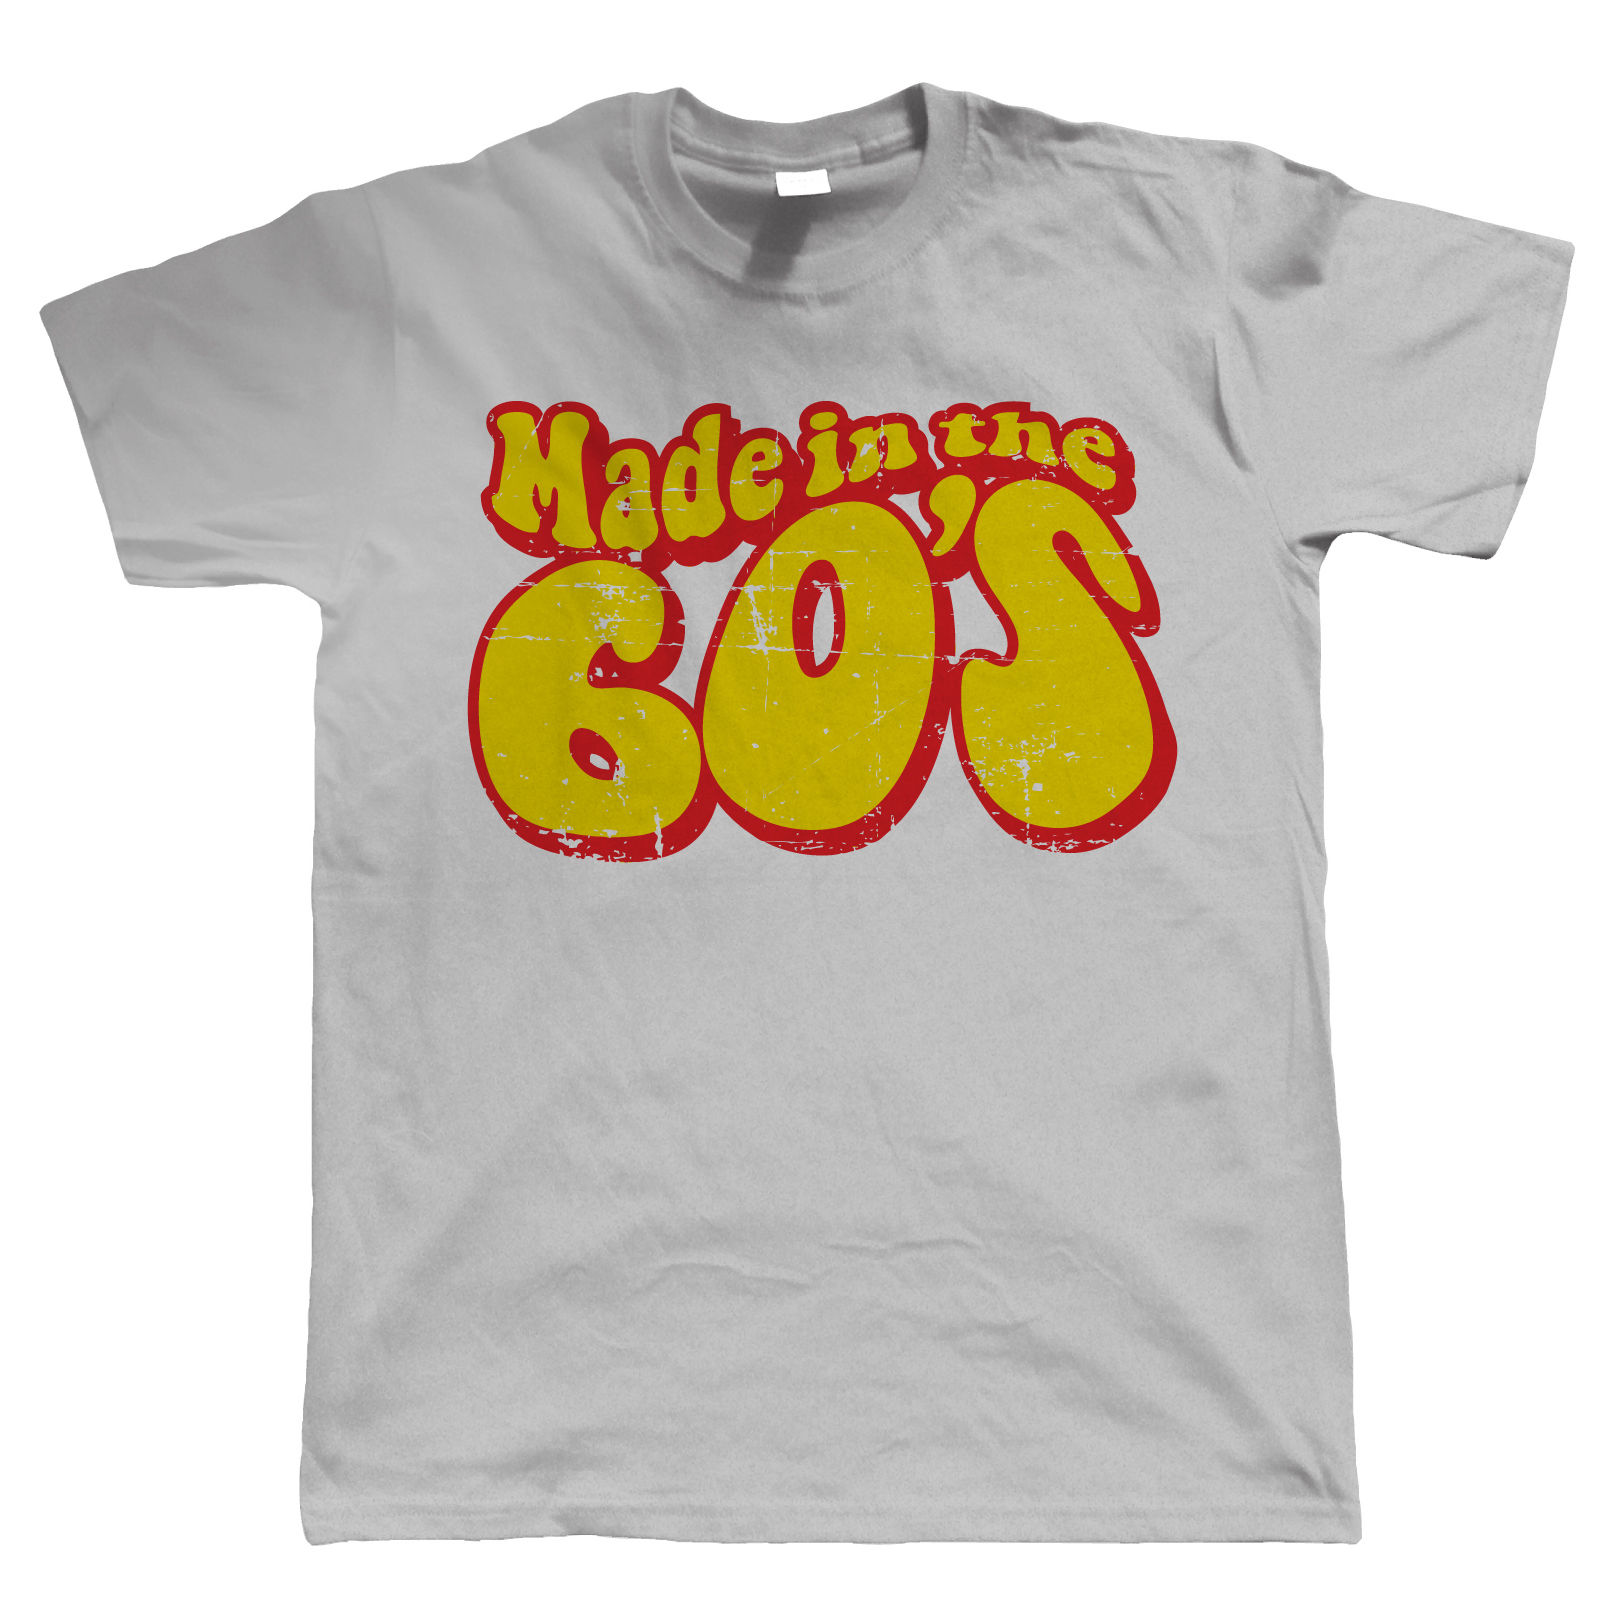 Made In The 60s Mens Funny 50th Birthday TShirt New TShirts Tops Tee Unisex Print Tees Short Sleeve O Neck T Shirts From